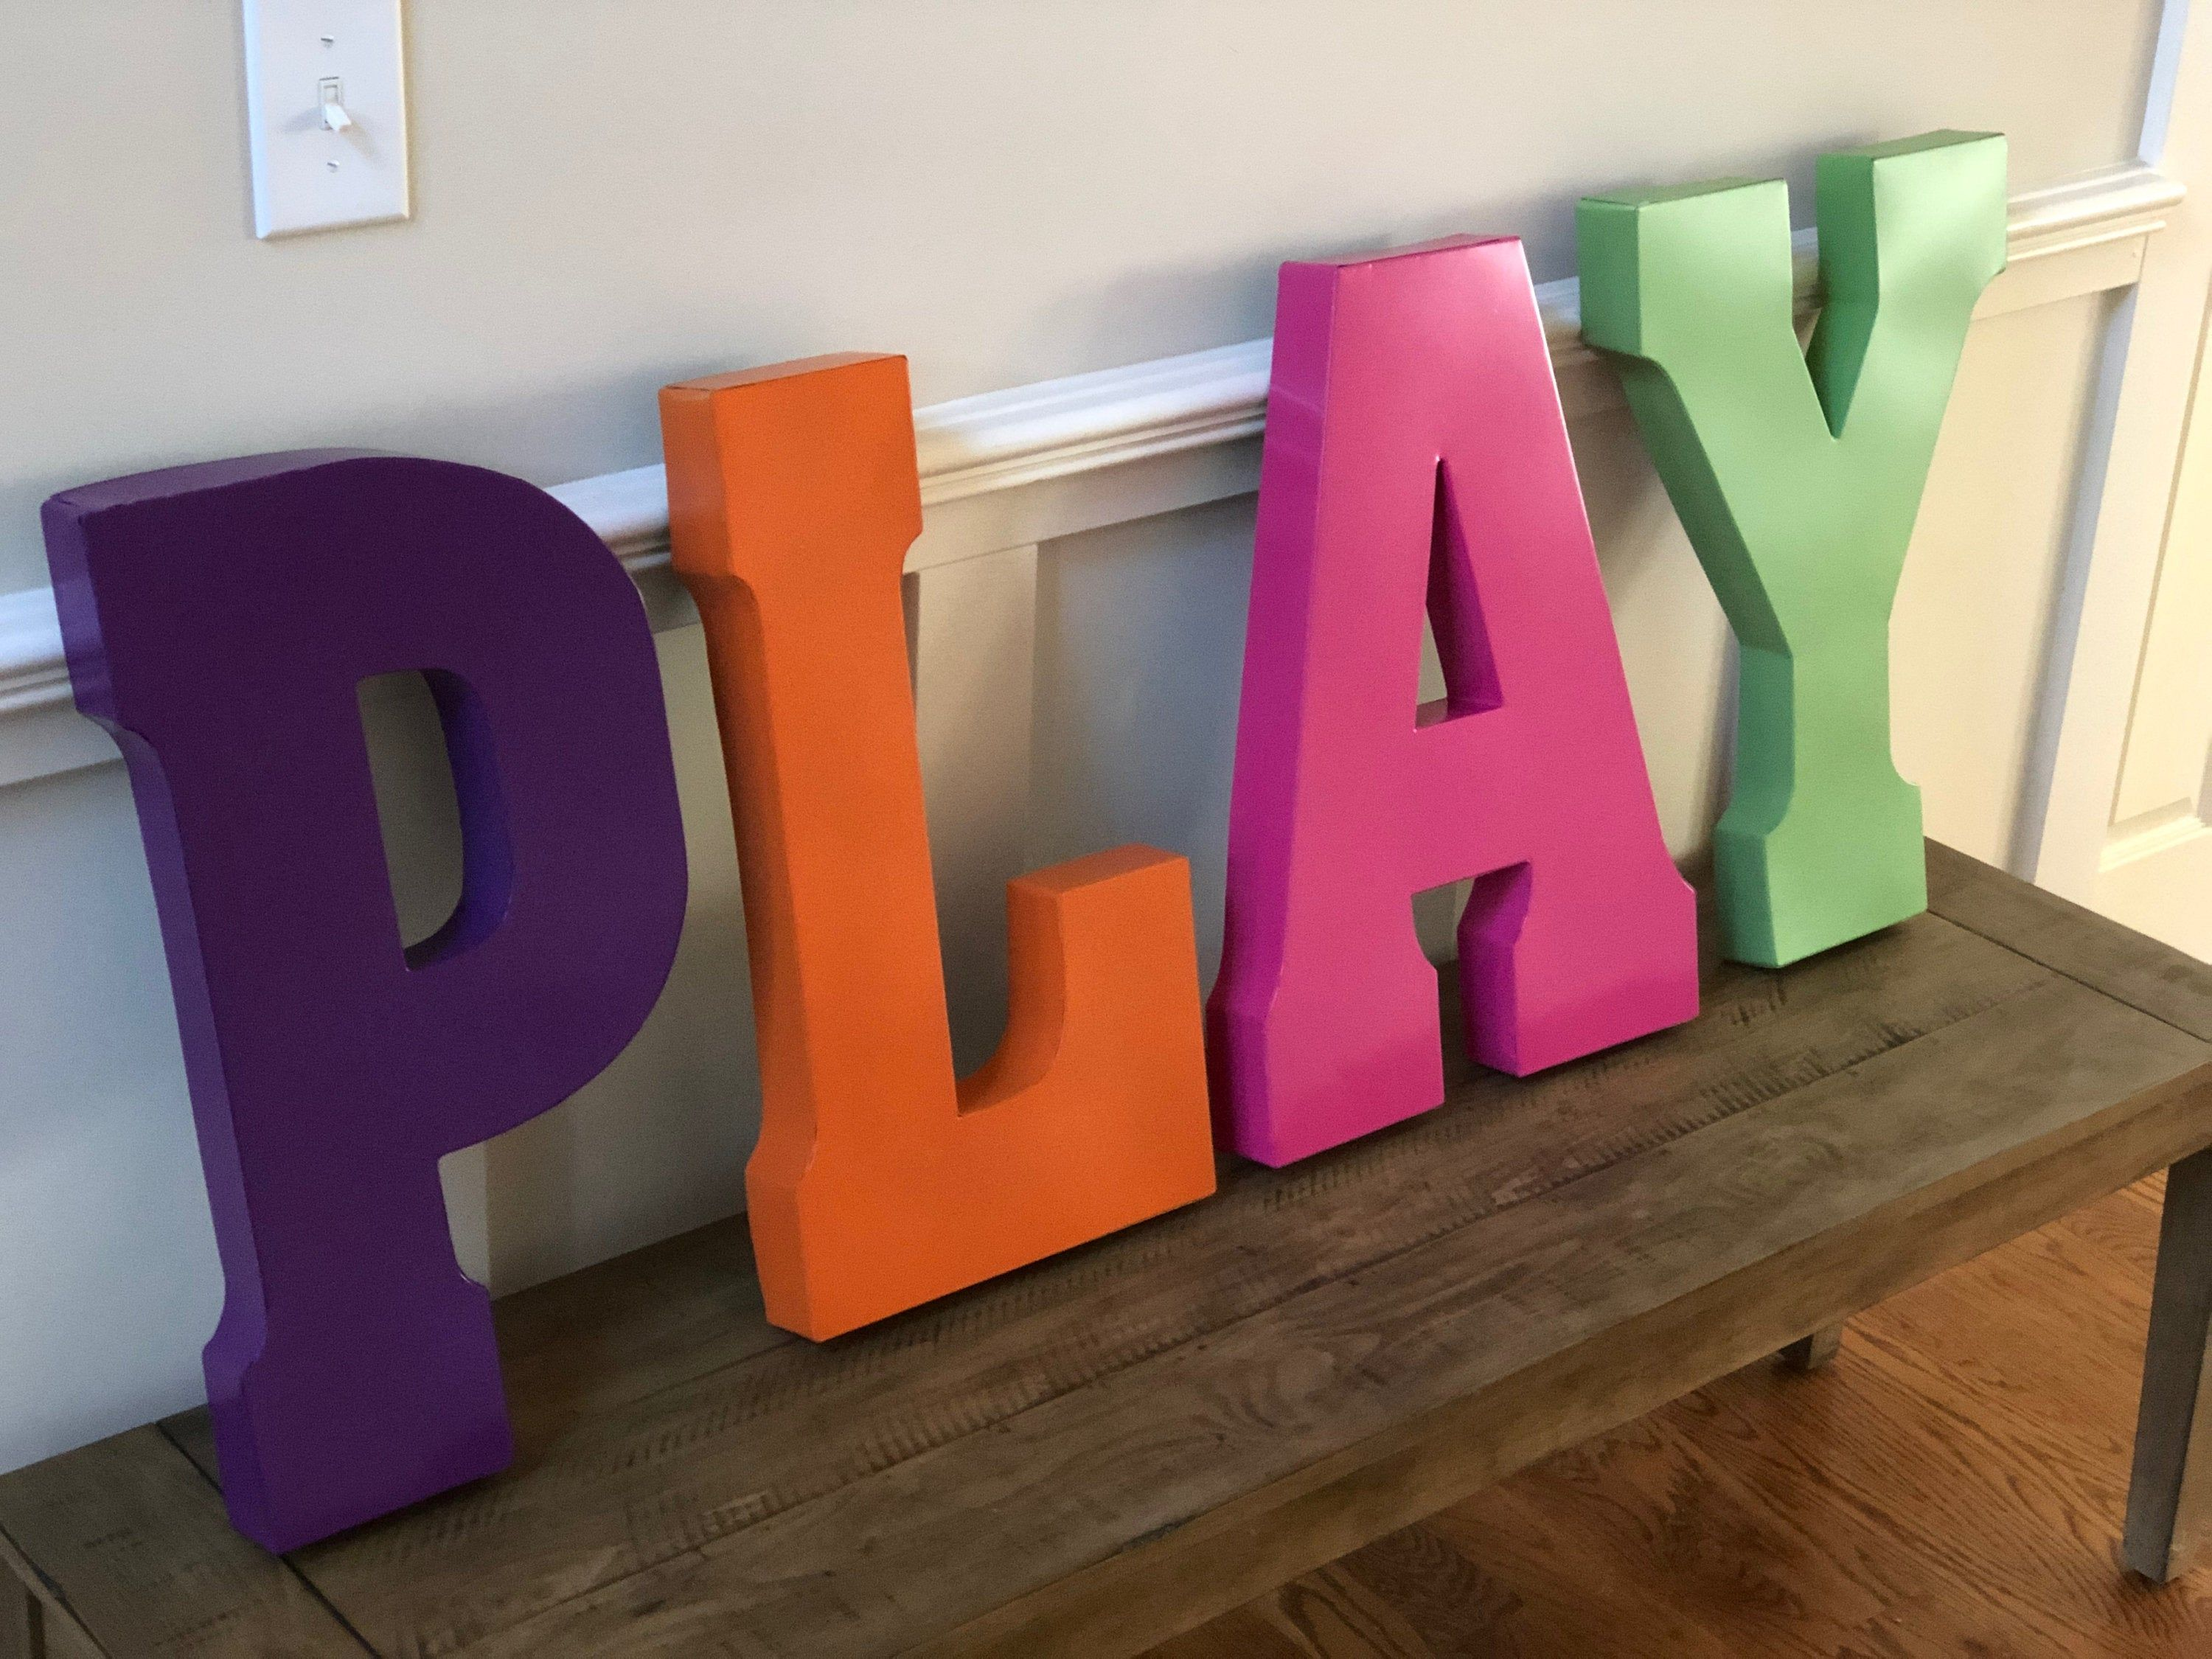 Sale Play Sign Home Sign Orange Letters Large Metal Letters Etsy In 2020 Large Metal Letters Metal Letter Decor Metal Wall Letters